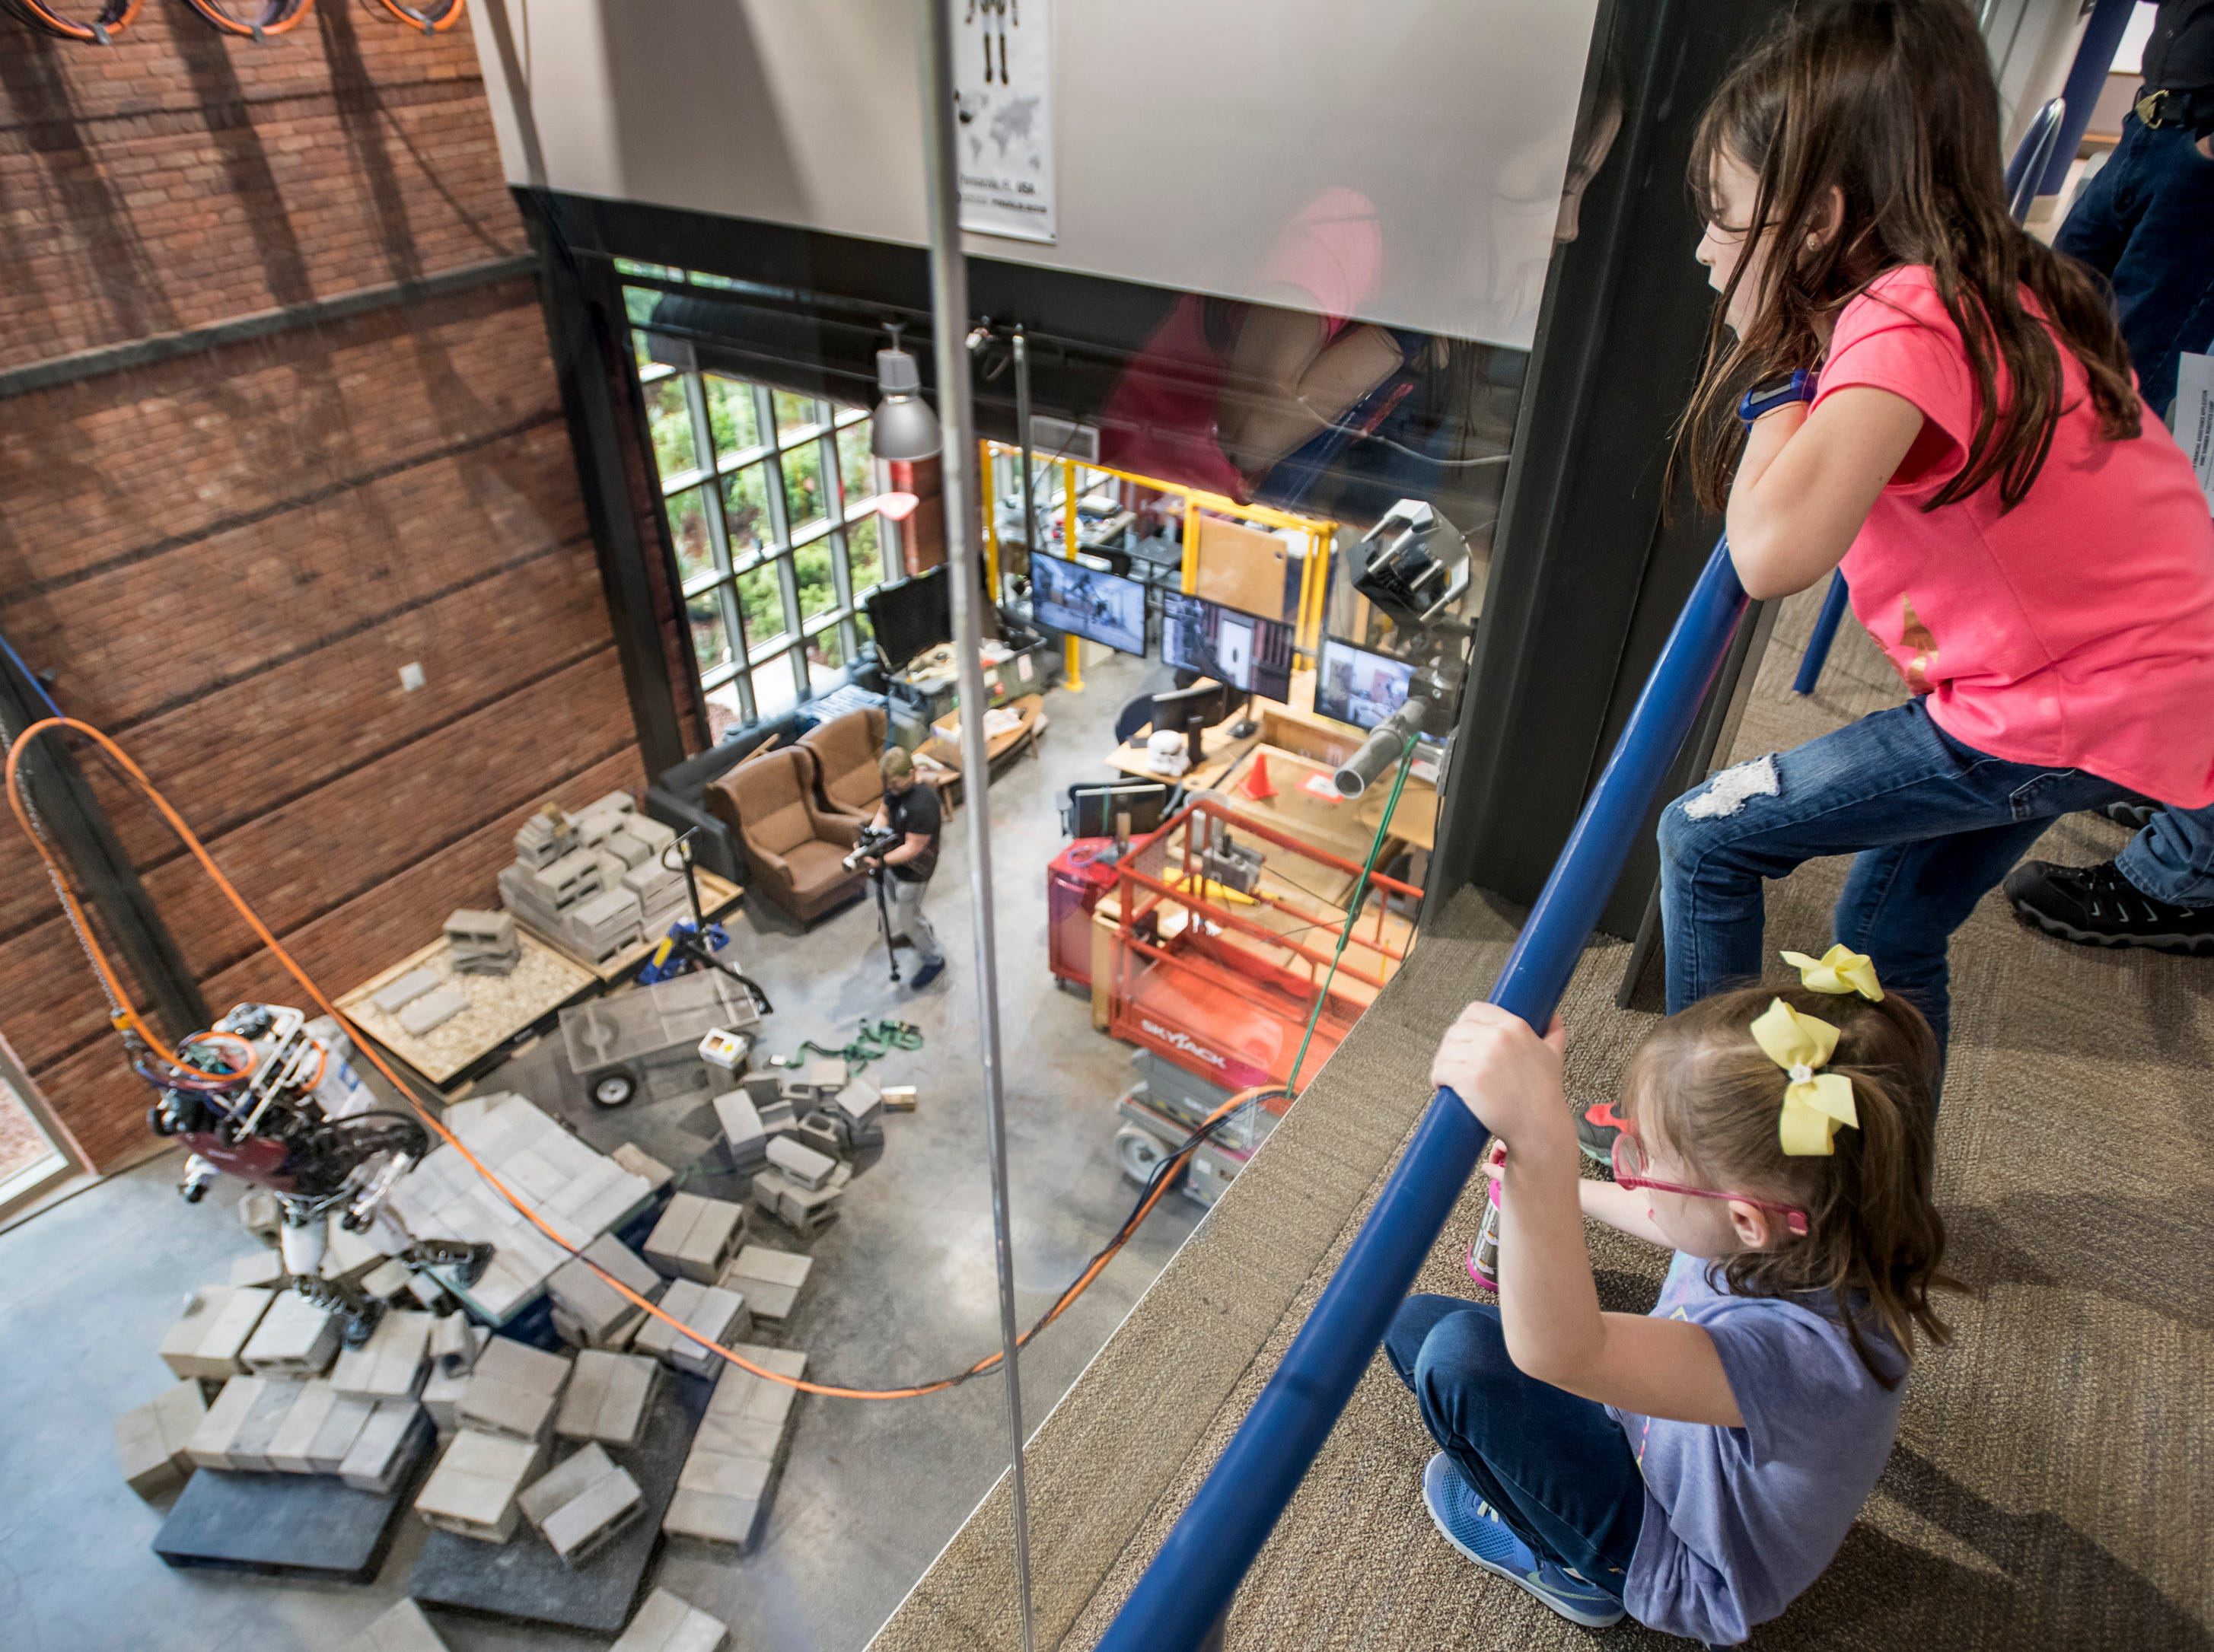 Renee McShane, 10, top, and her sister Madelyn McShane, 7, watch a demonstration of the Atlas robot during the IHMC Open House in downtown Pensacola on Friday, April 12, 2019.